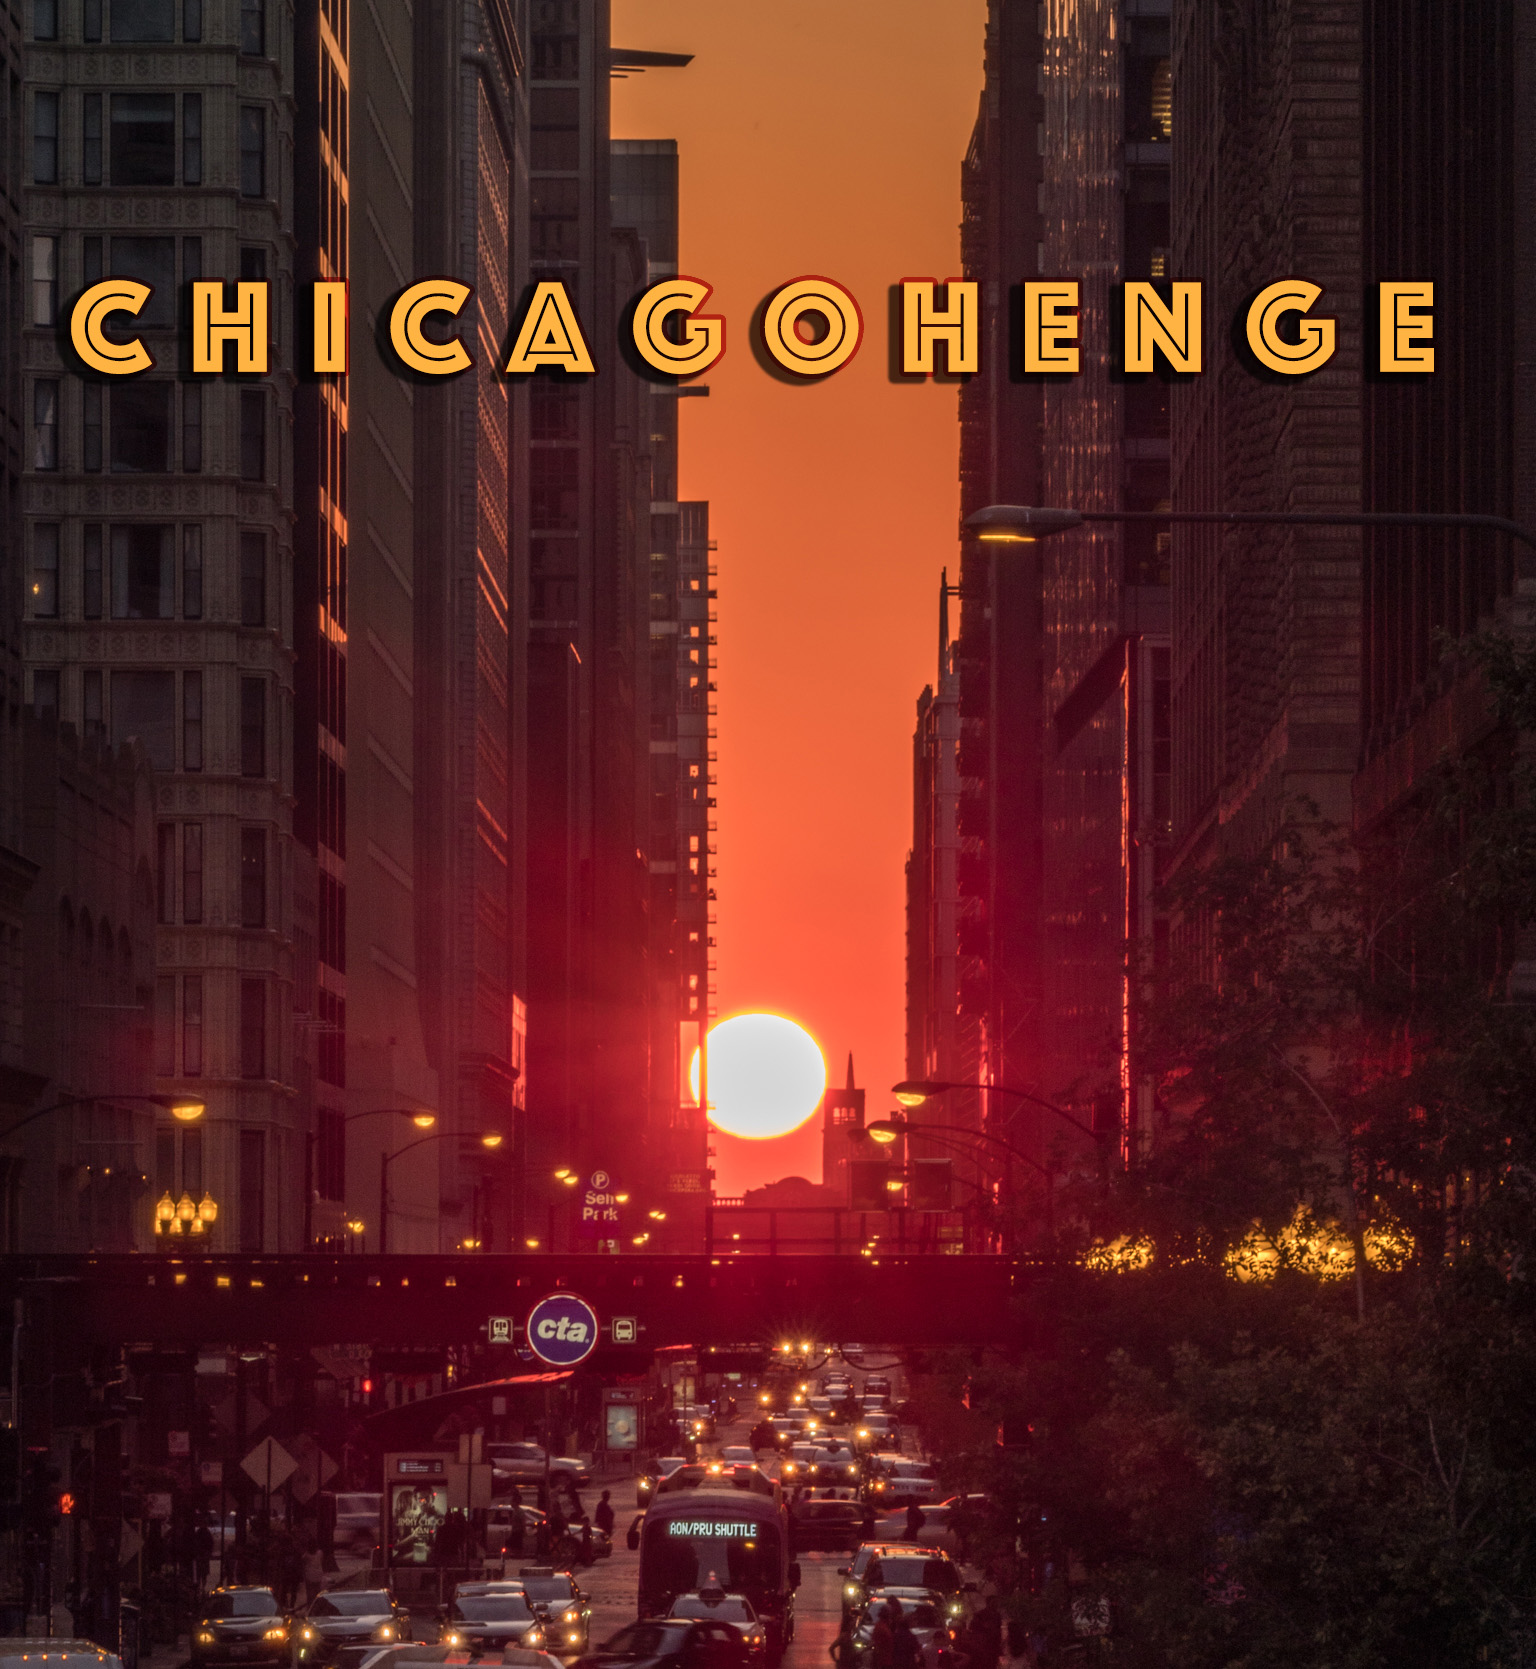 Equinox Classes Reviews >> Chicagohenge | 5 Minutes - Chicago Photography School